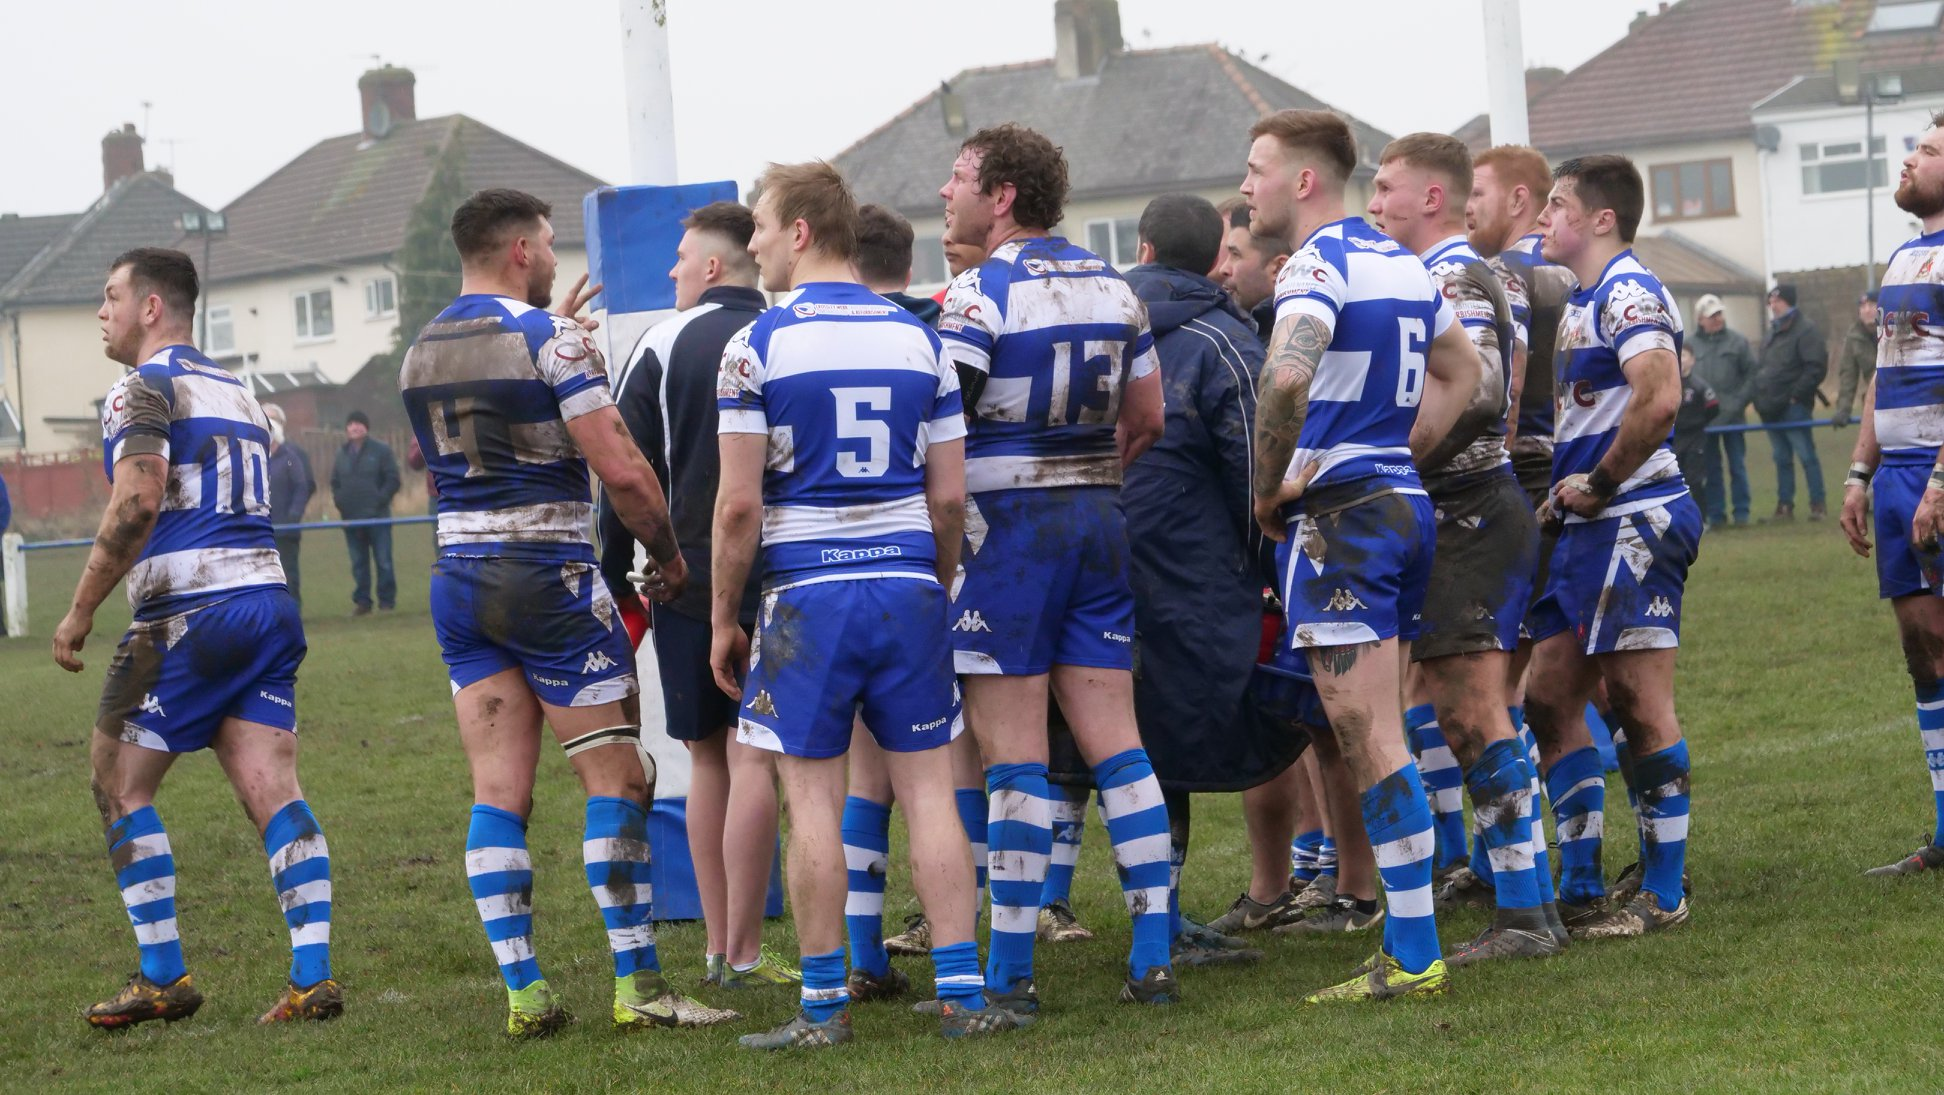 Siddal's success attracted interest and some players were drawn away from the club, but Jamie assures us not much as changed ahead of the 2019 campaign.